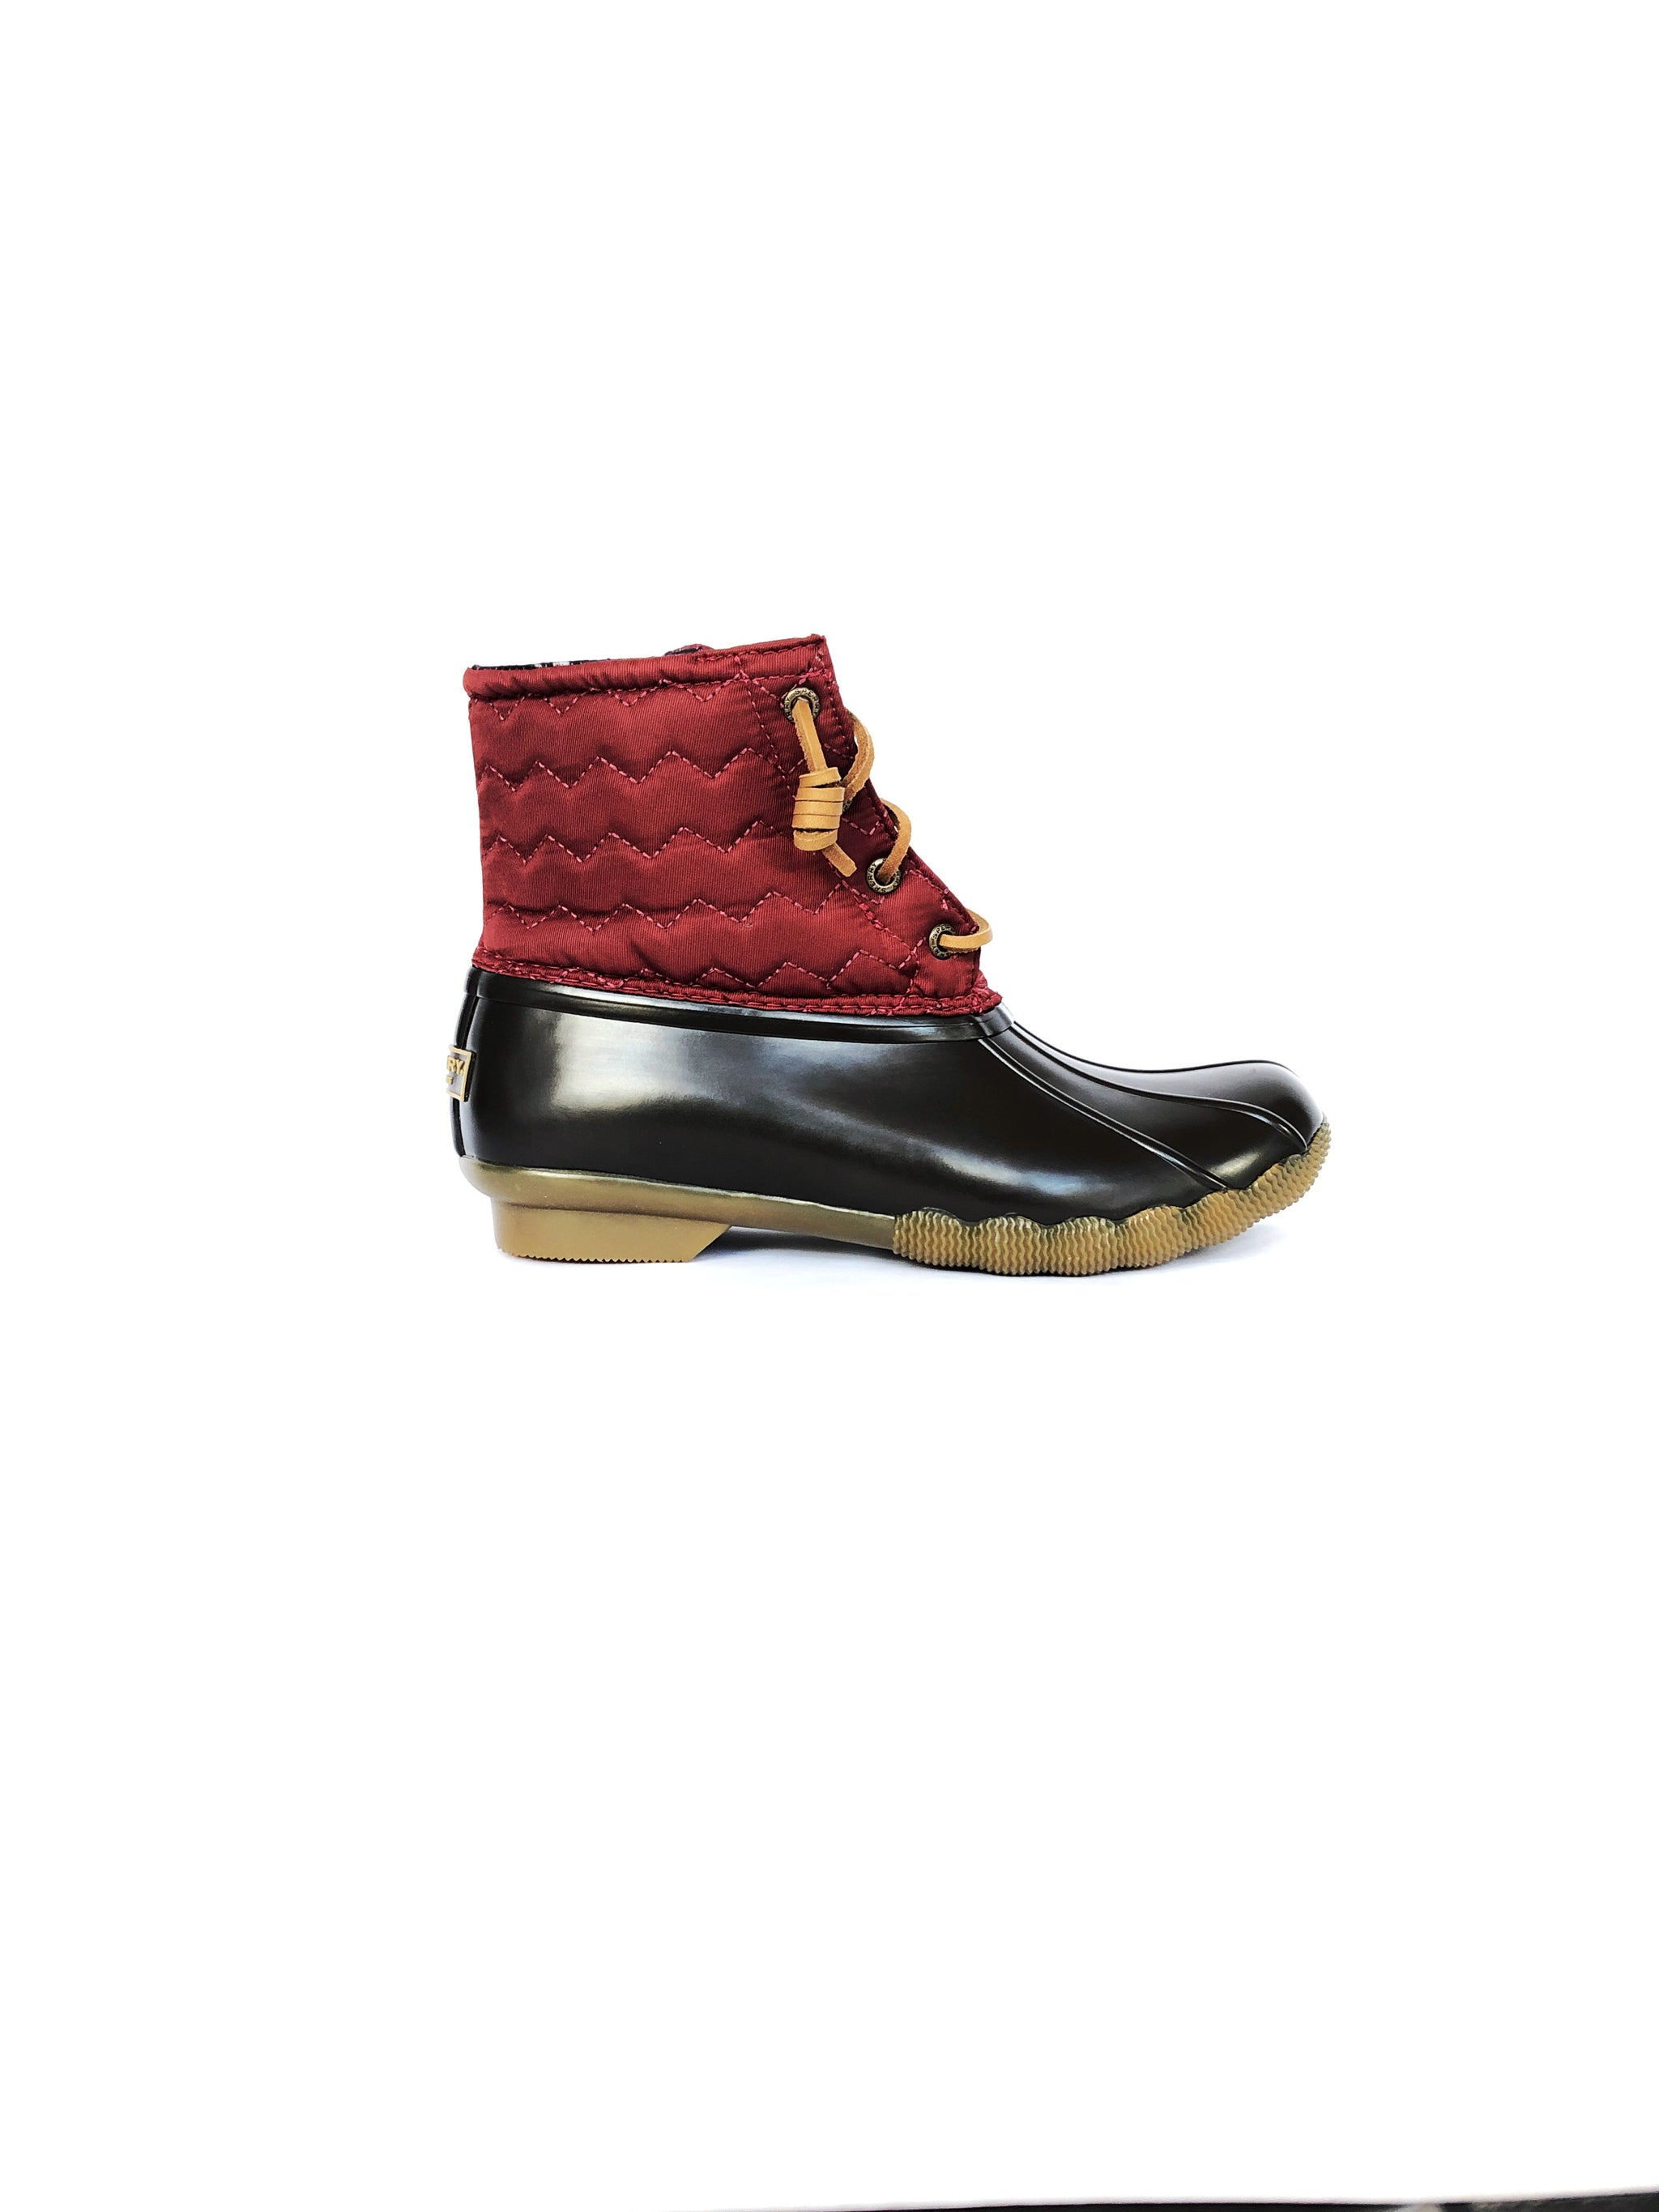 SPERRY - SALTWATER QUILTED CHEVRON DUCK BOOT IN WINE